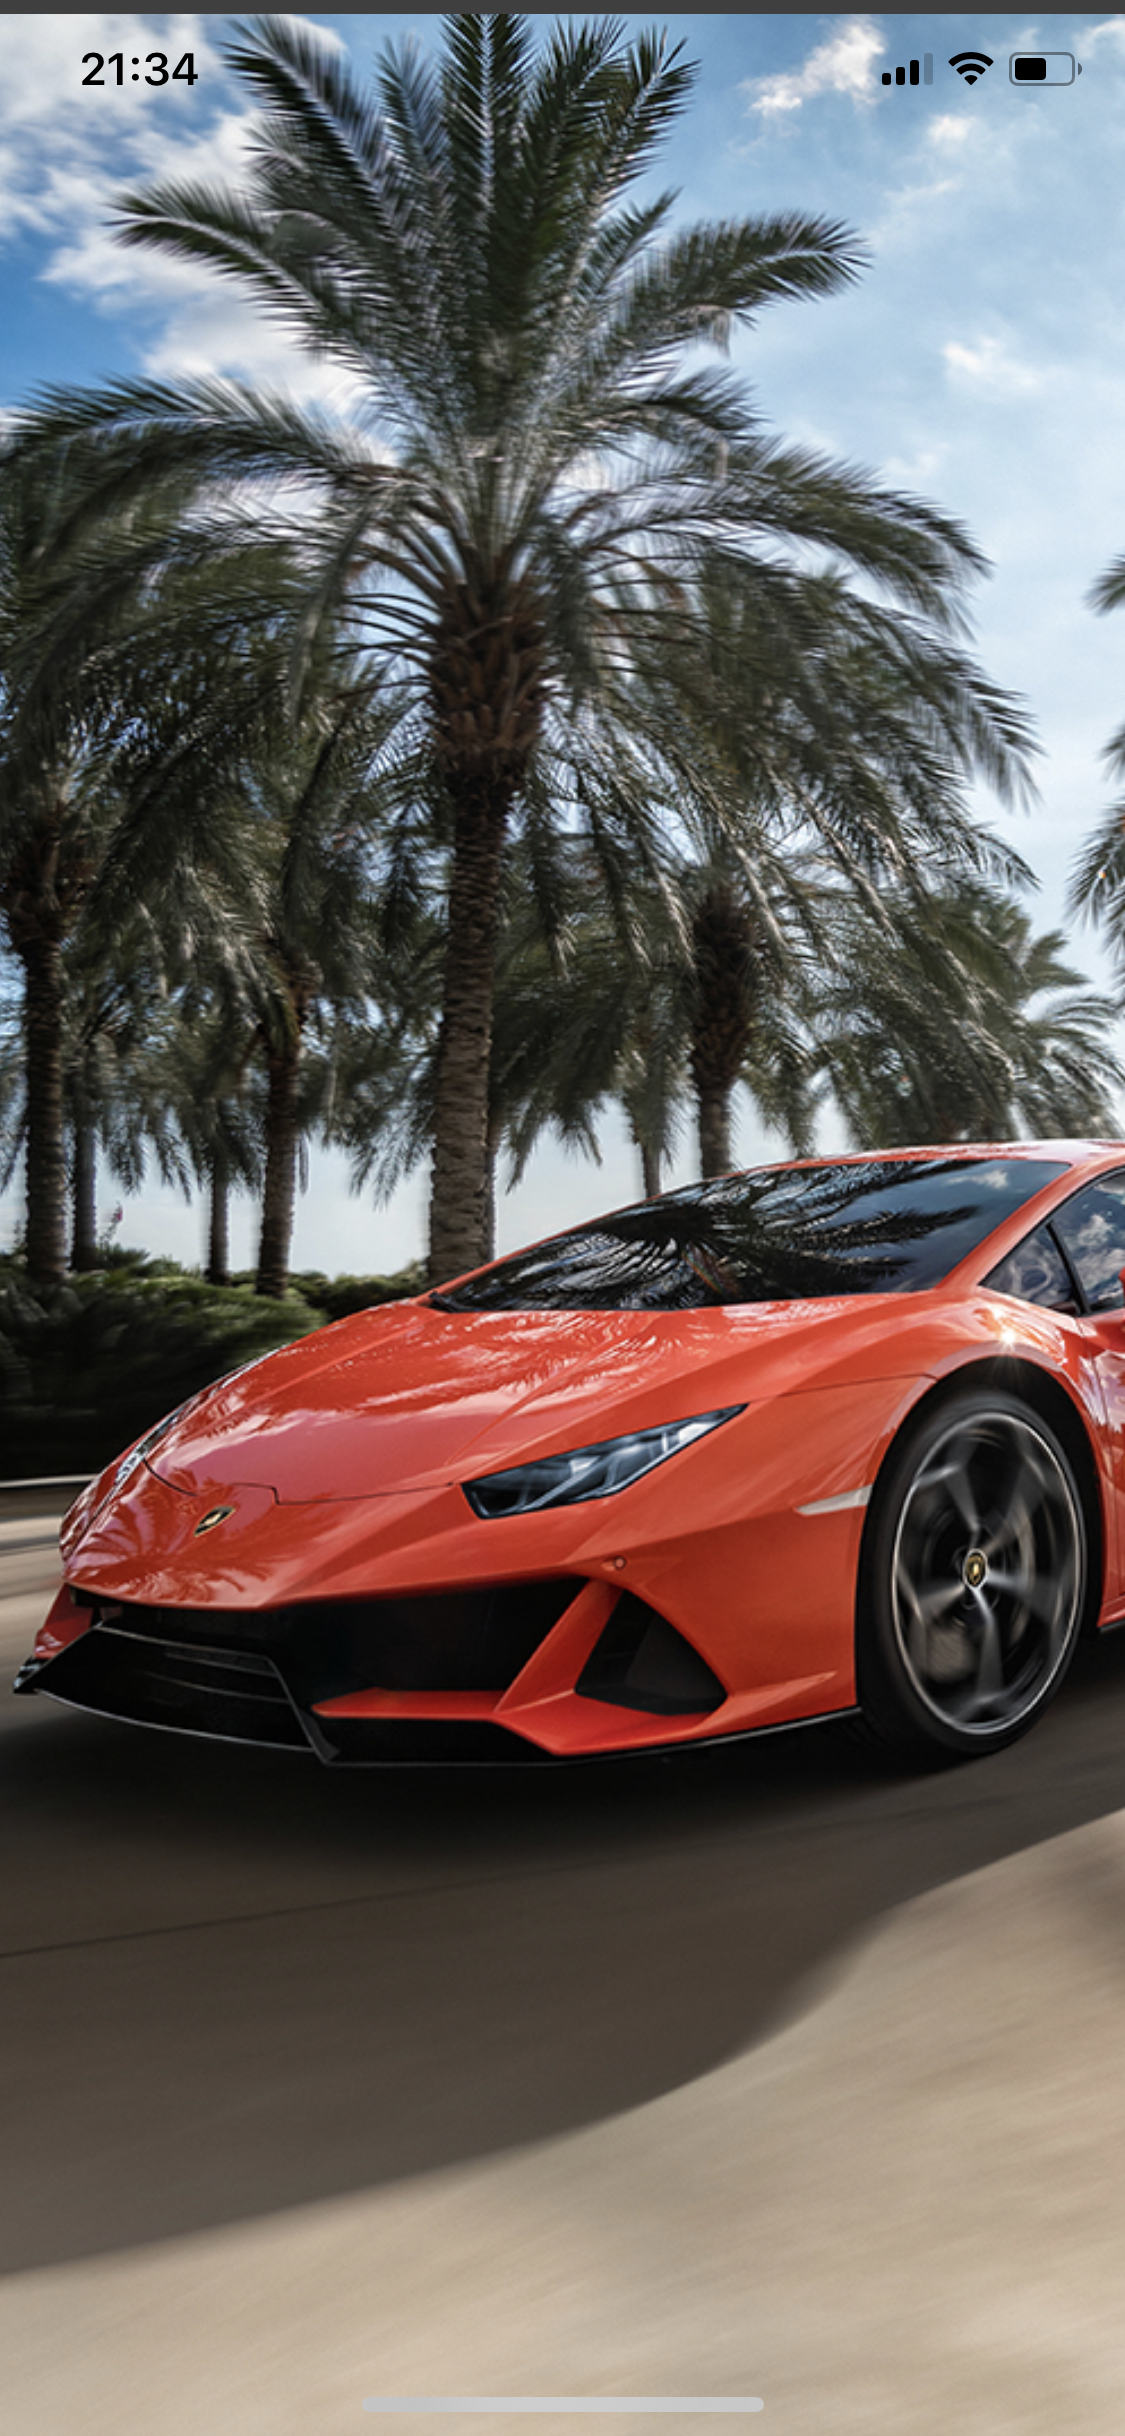 Watch Supercar Videos And Shop For Diecast Model Cars At Carintensity Com Lamborghini Lamborghini Huracan Lamborghini Super Cars